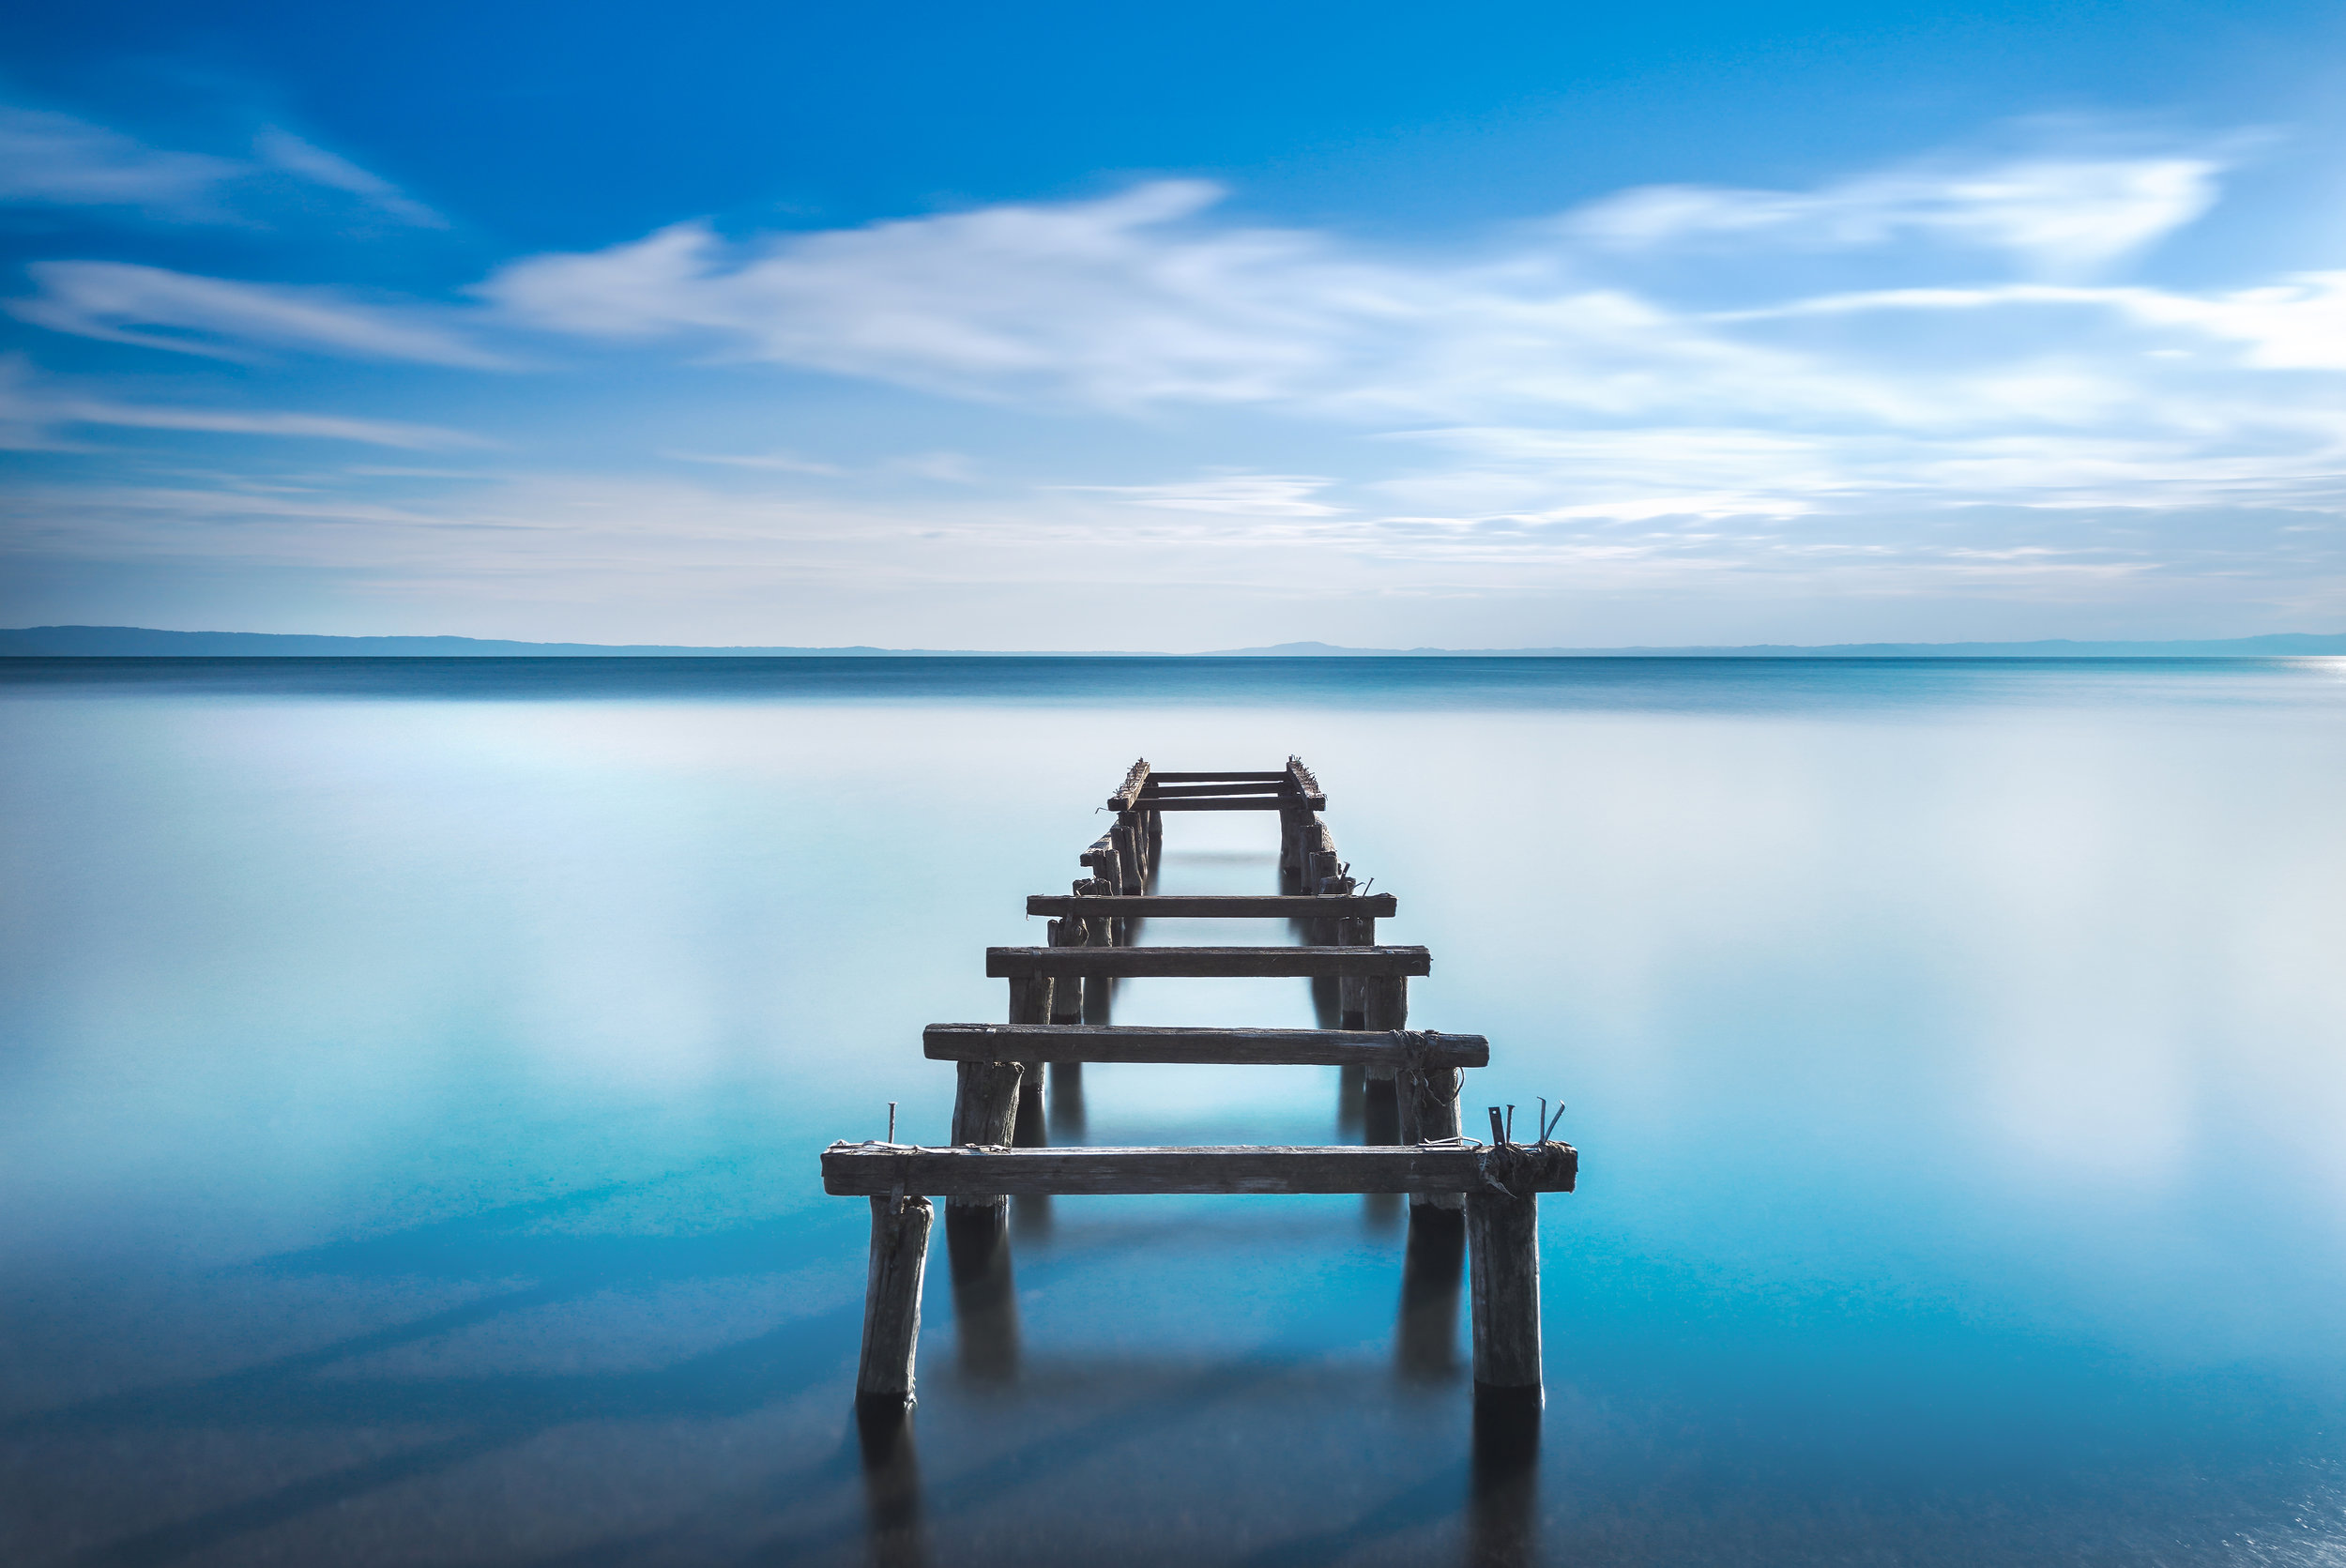 wooden-pier-or-jetty-remains-on-a-blue-lake-long-PNSTXRC.jpg